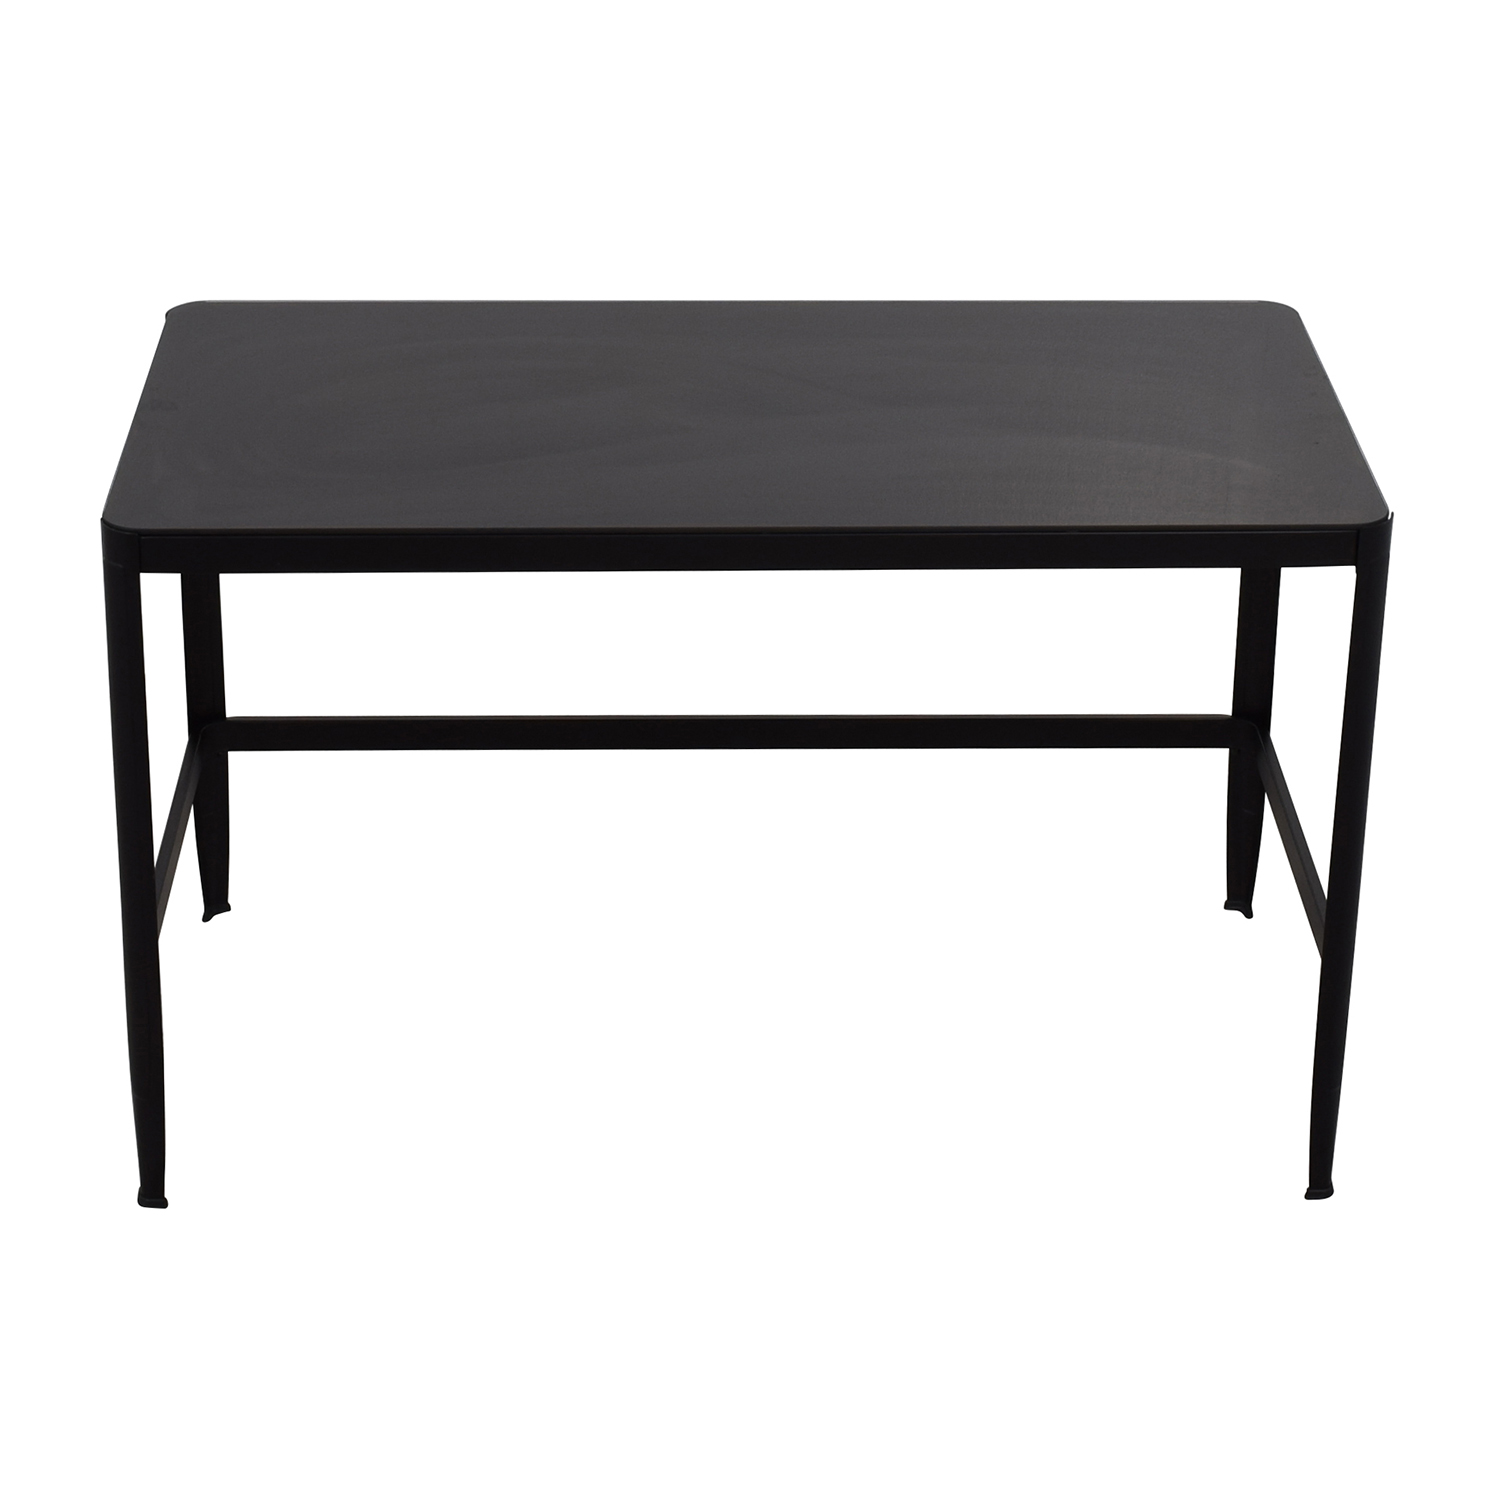 Modern Black Metal Table with Glass Top nj